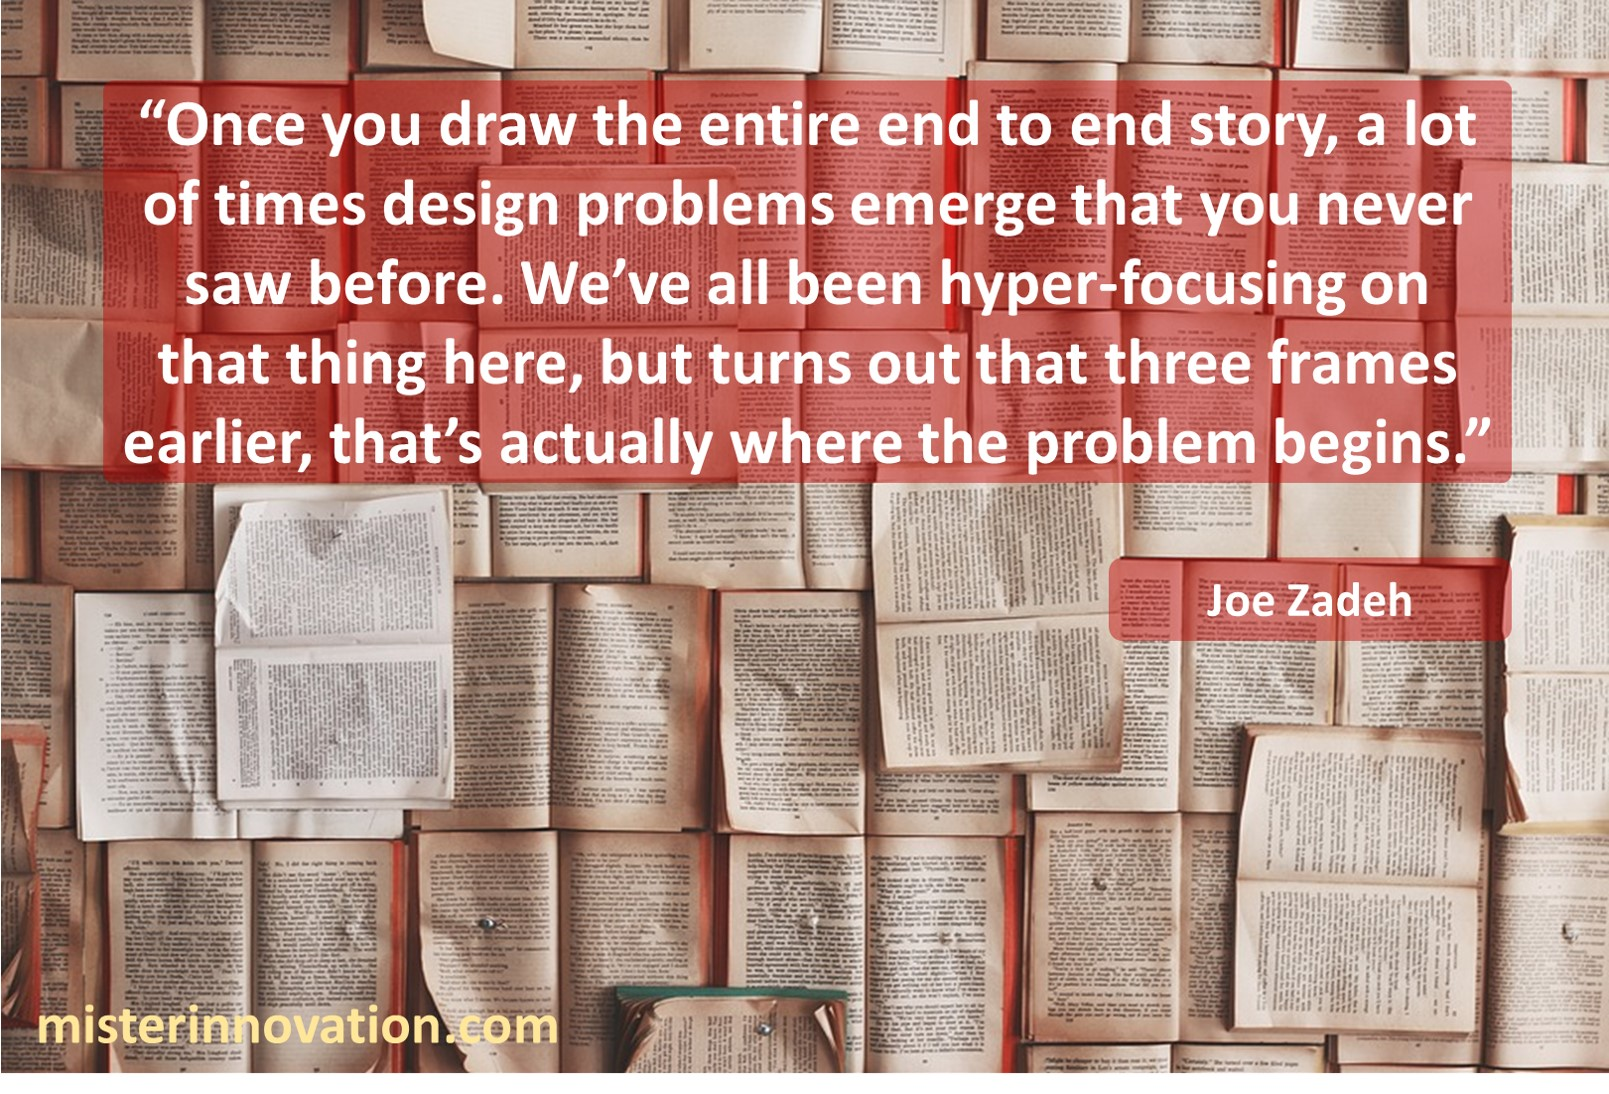 Joe Zadeh Quote on How Storytelling Helps Design Problems Emerge